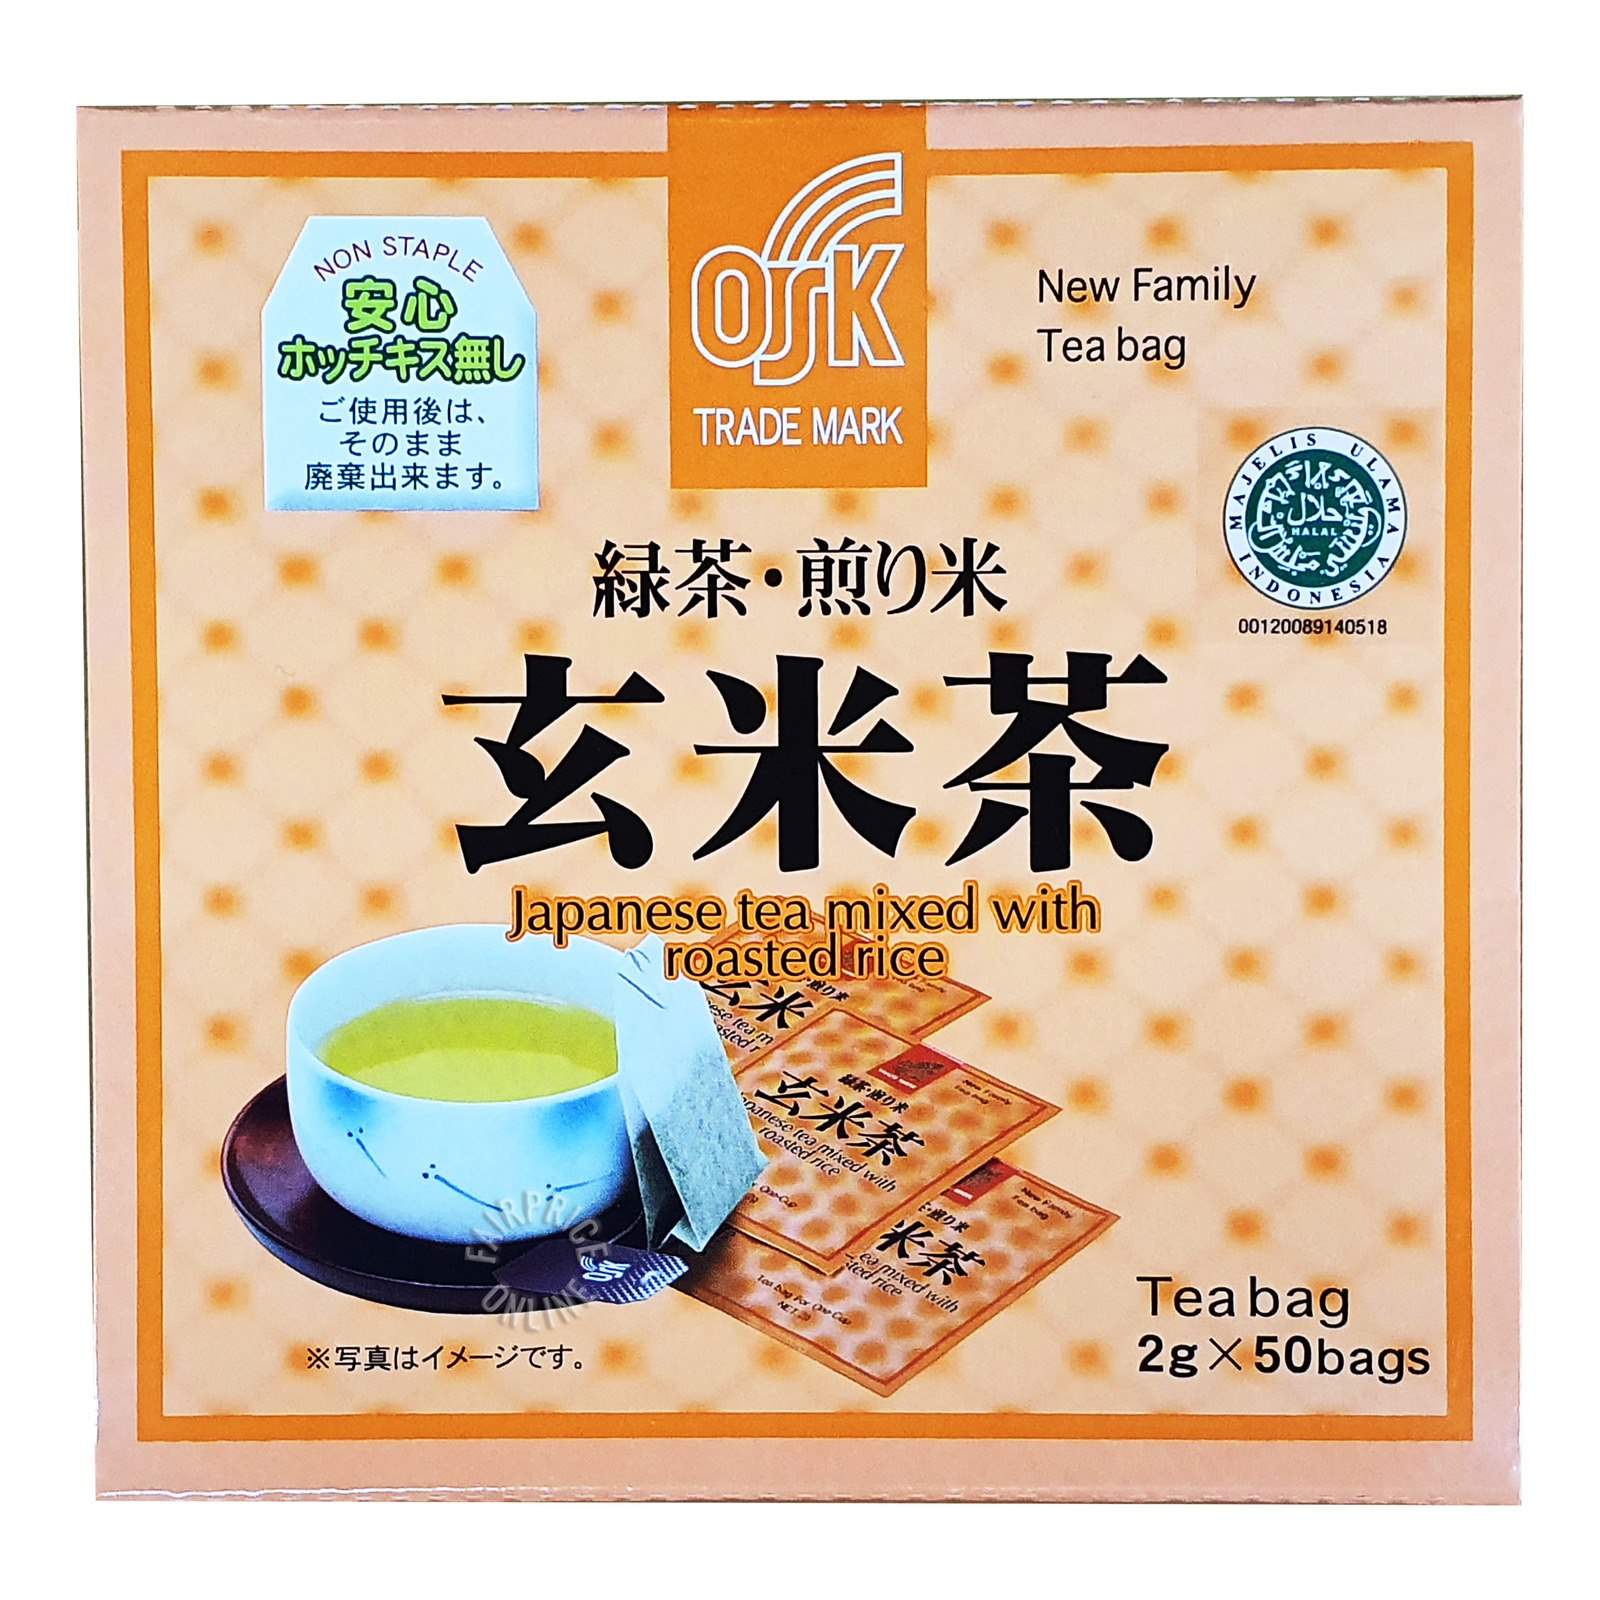 OSK Japanese Green Tea Bags - Mixed with Roasted Rice